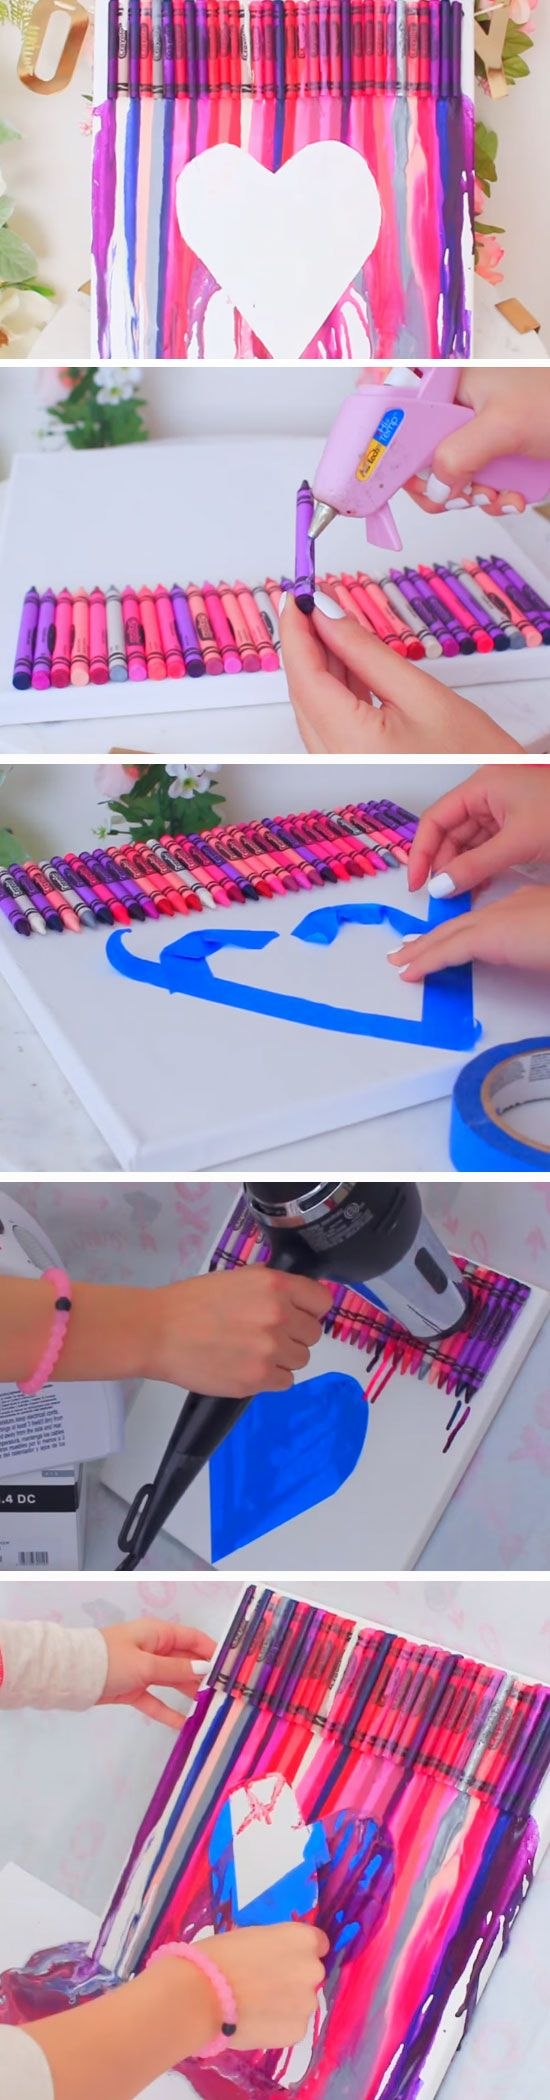 Diy Valentine Gifts For Him Pinterest